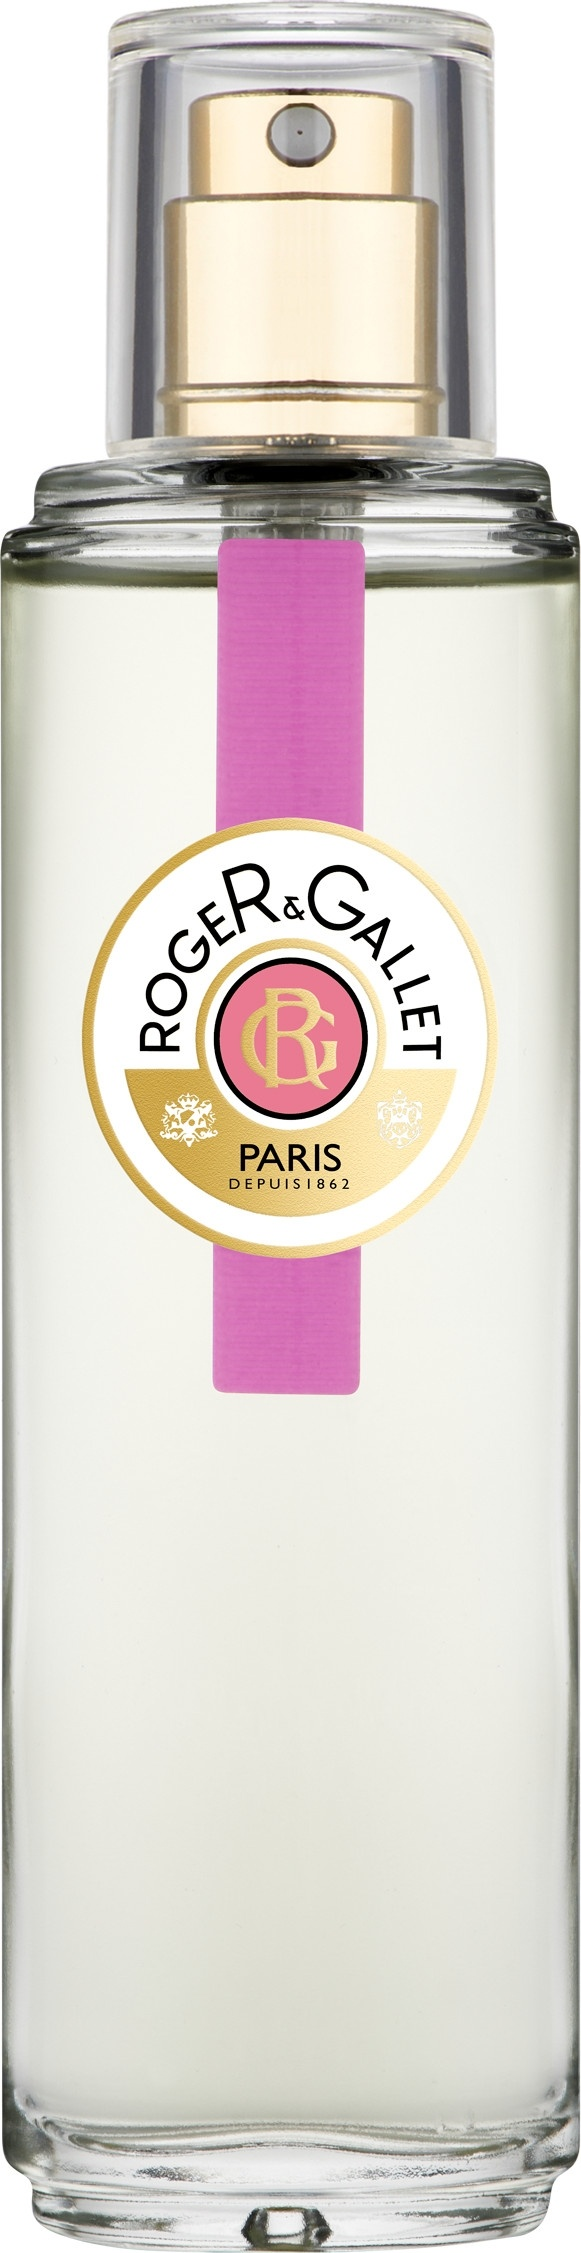 Roger & Gallet Gingembre Rouge Fragrant Water Spray 30ml